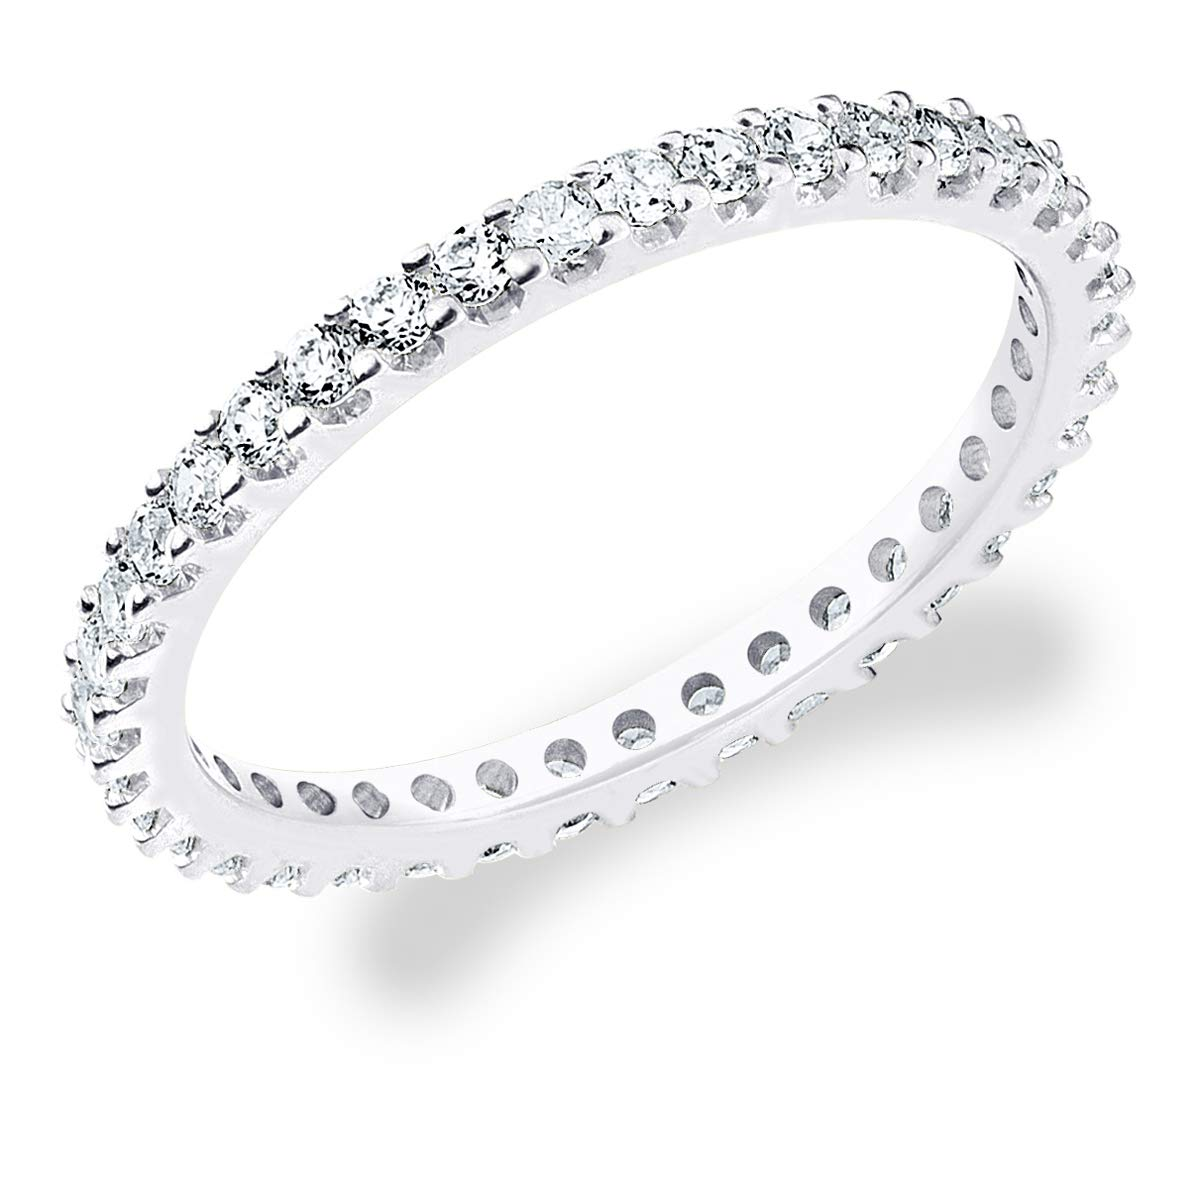 Eternity Wedding Bands 10K White Gold 1/2ct Eternity Stackable Diamond Anniversary Ring, Size 8.5